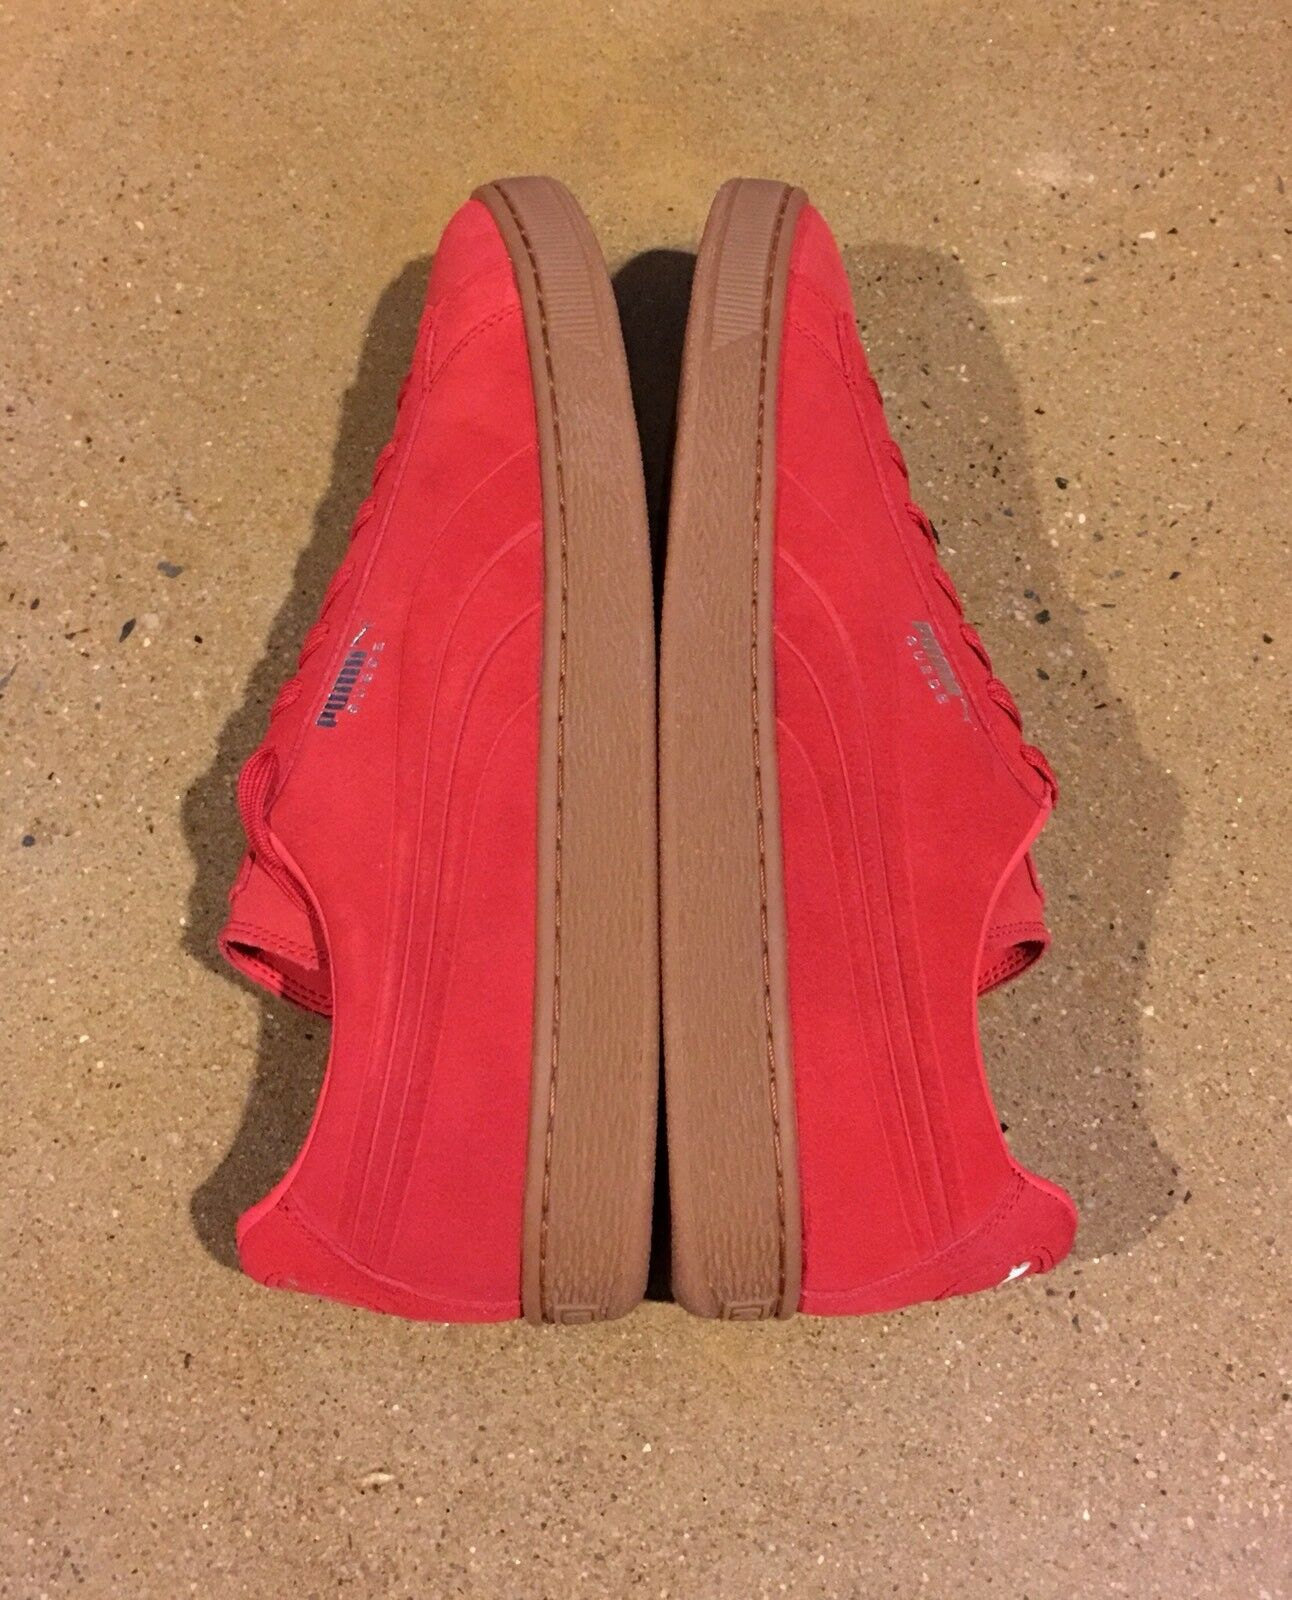 Puma Suede Emboss Men's Size 14 US High Risk Red Gum BMX DC shoes Sneakers